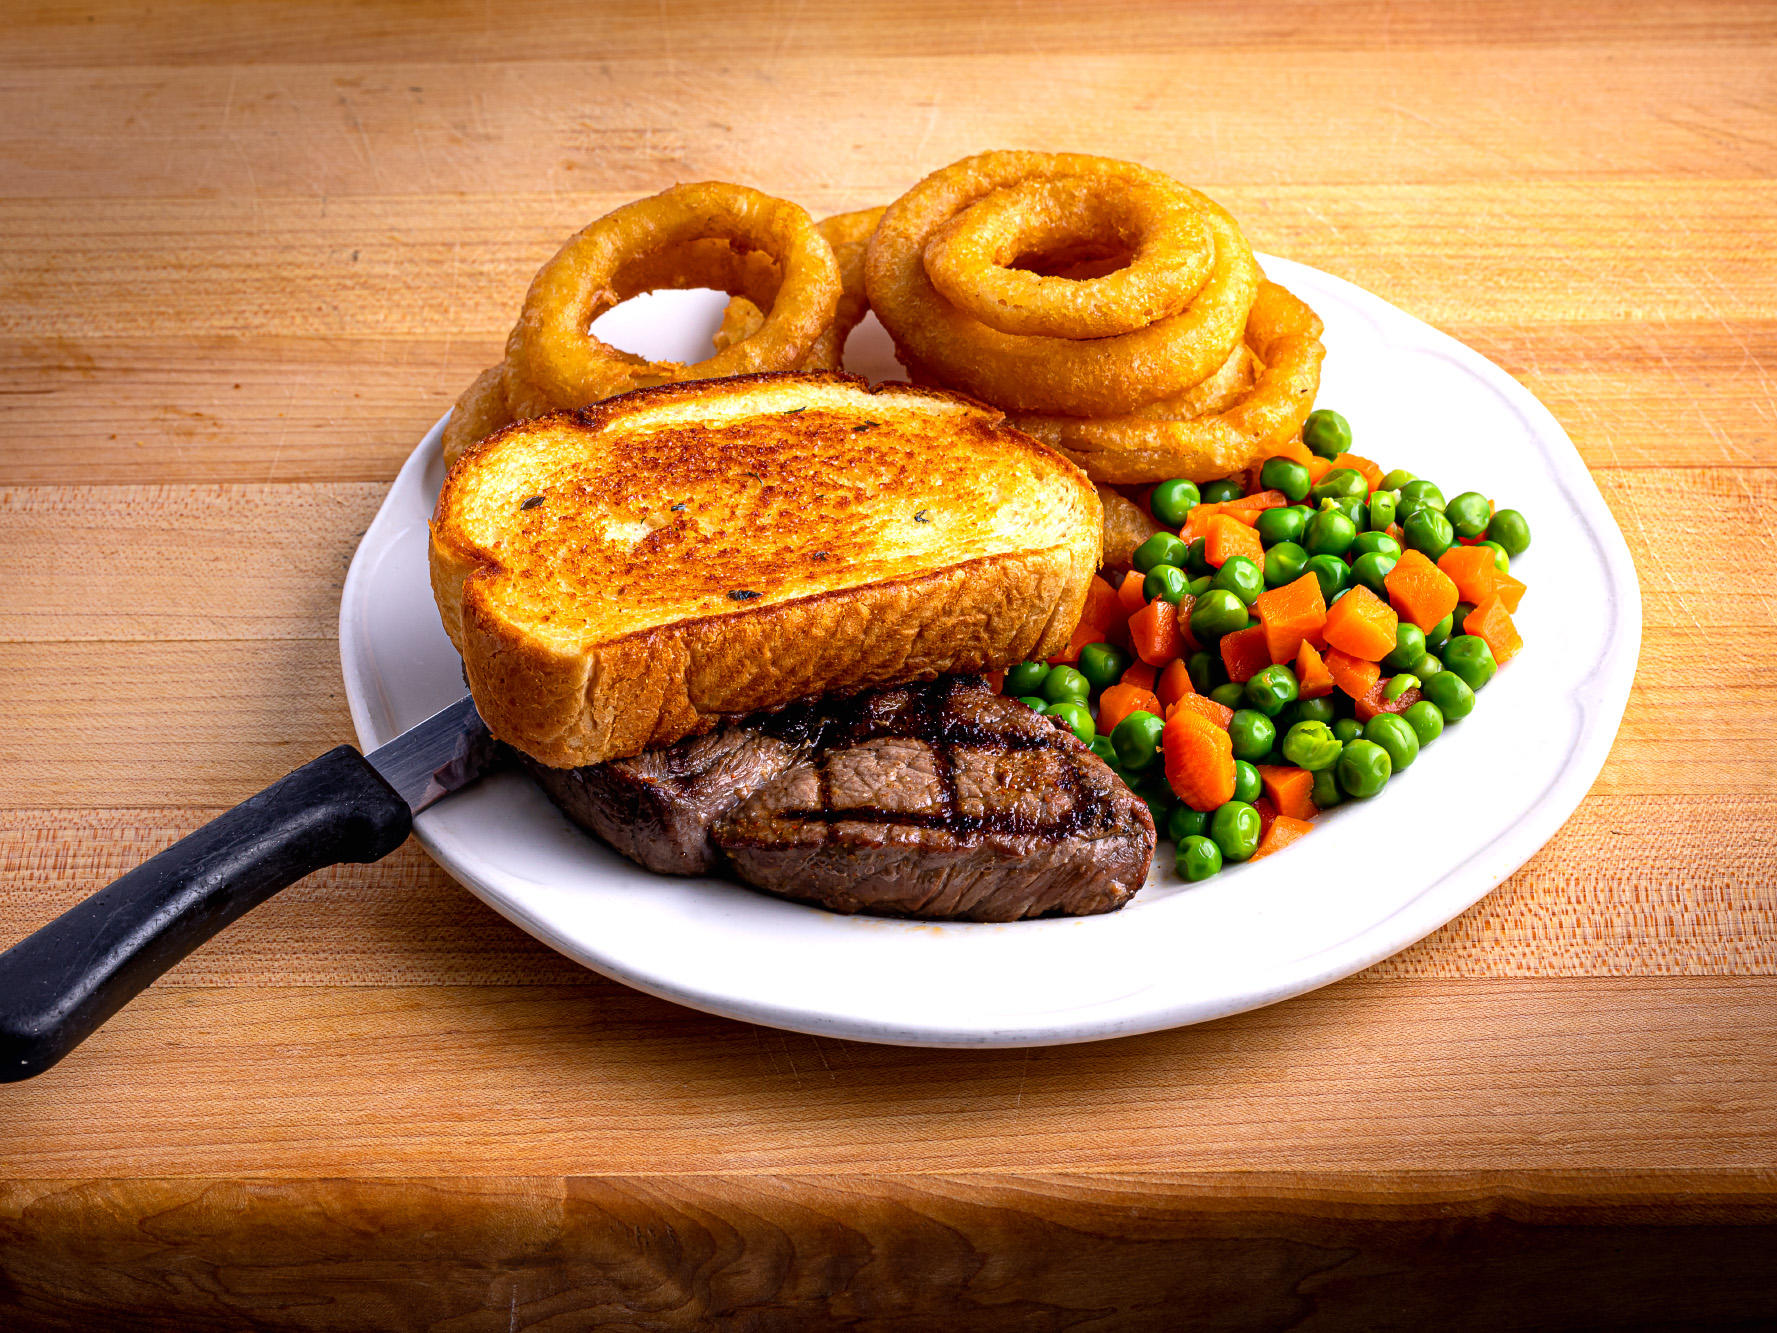 steak with onion rings, vegetables and toasted bread